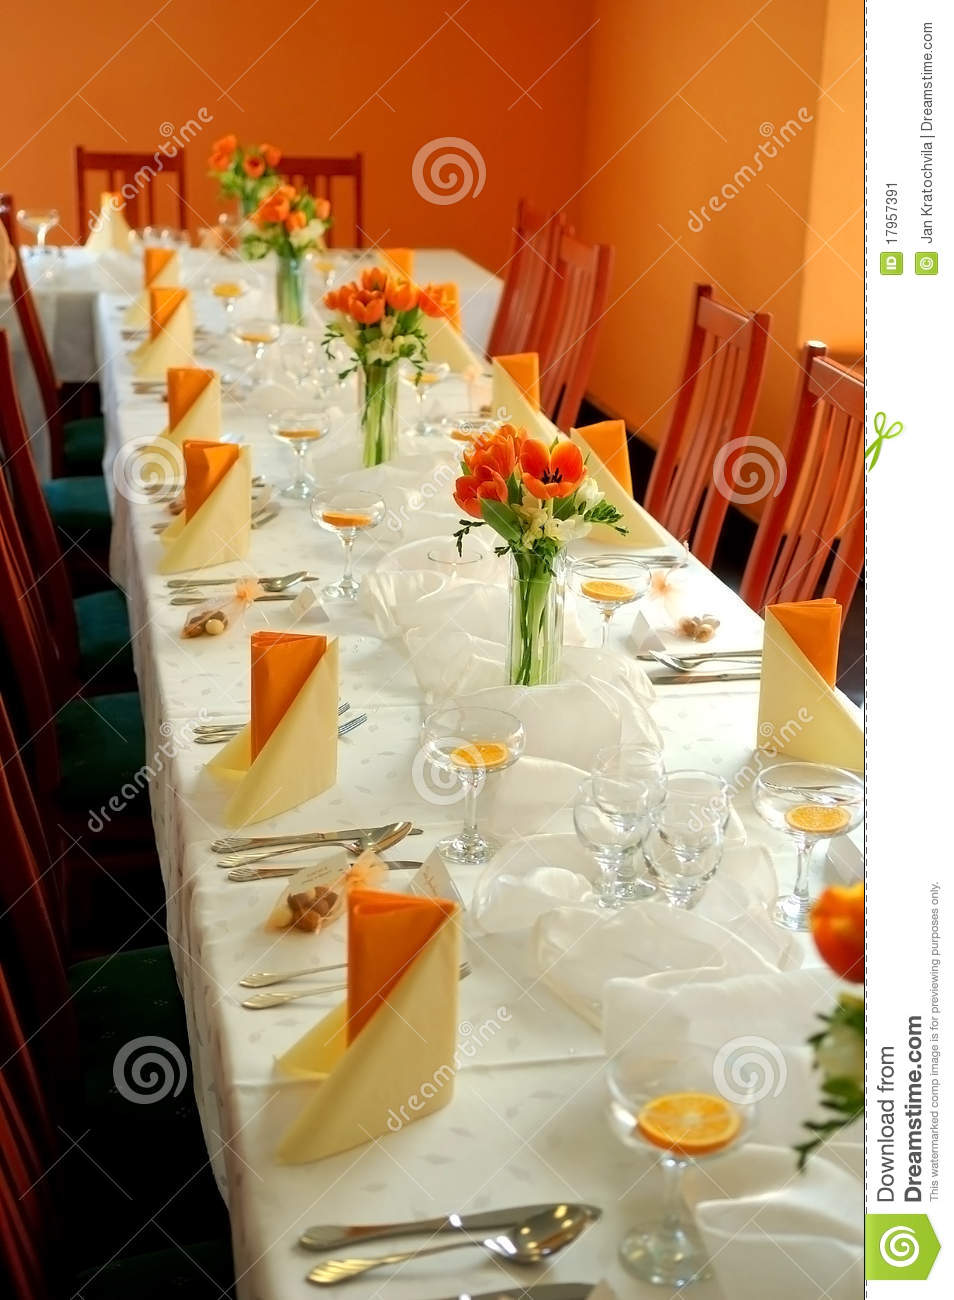 Wedding Reception In Orange Stock Image Image Of Guest Dining